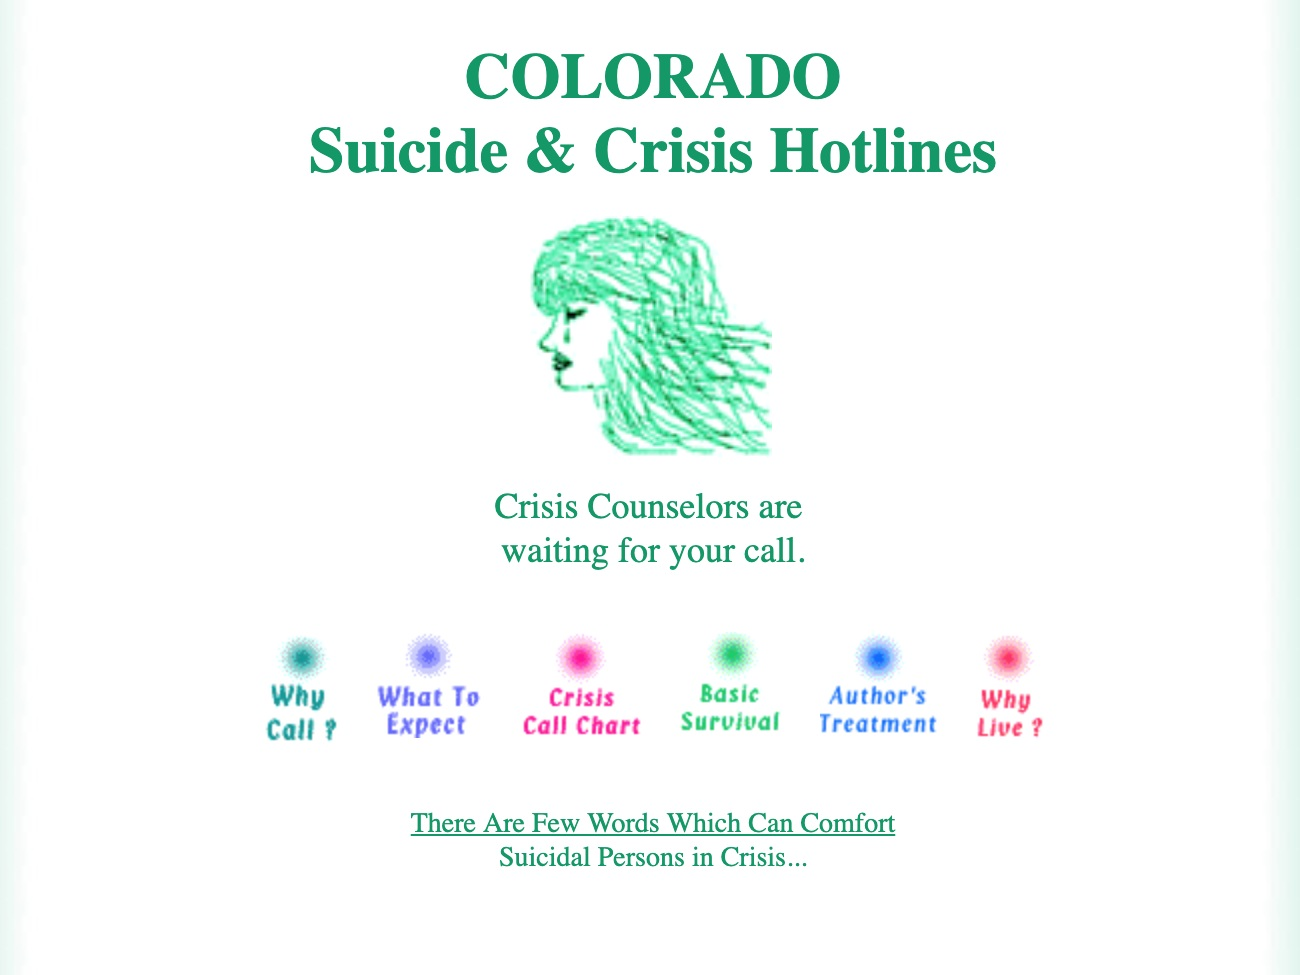 colorado hotlines - Colorado has several crisis hotlines that are available 24 hours a day, 7 days a week.